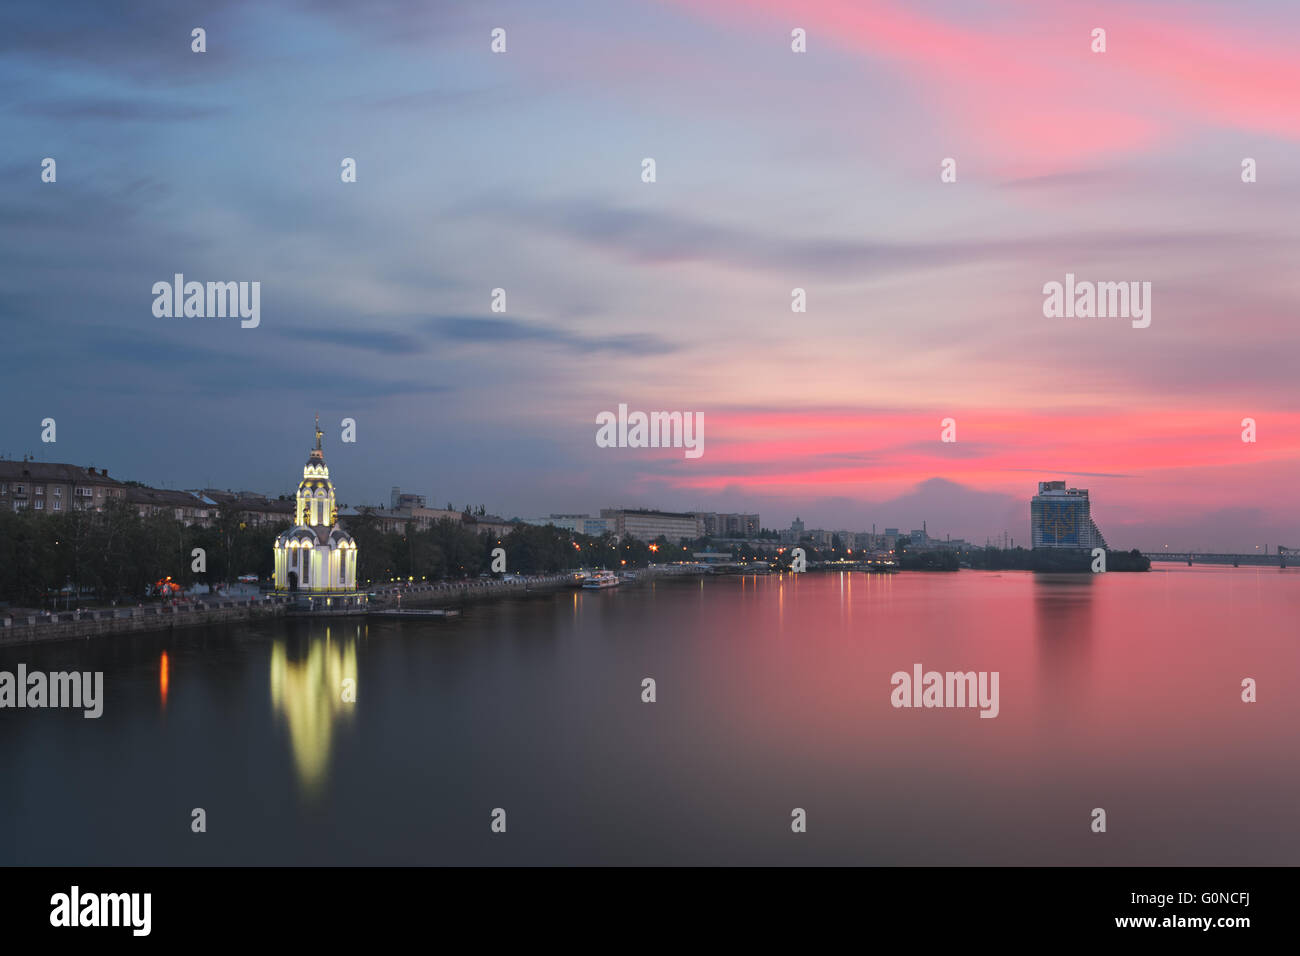 Majestic colorfull sunset in the Dnipropetrovsk. Ukraine - Stock Image